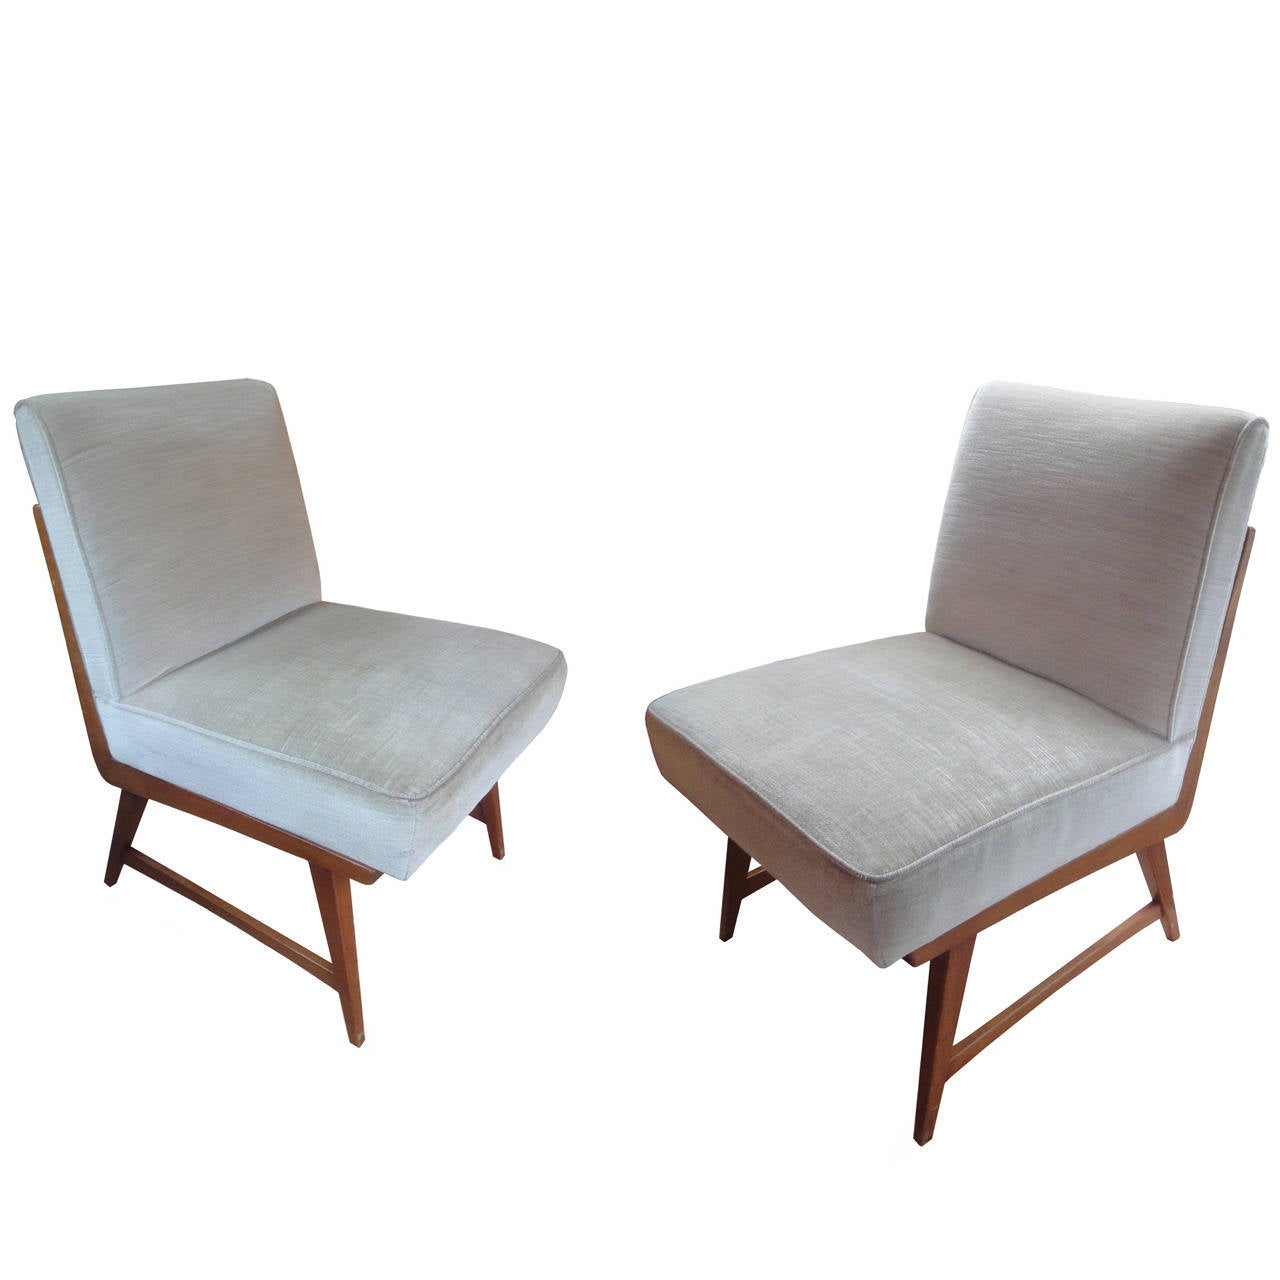 Pair of low chairs at 1stdibs